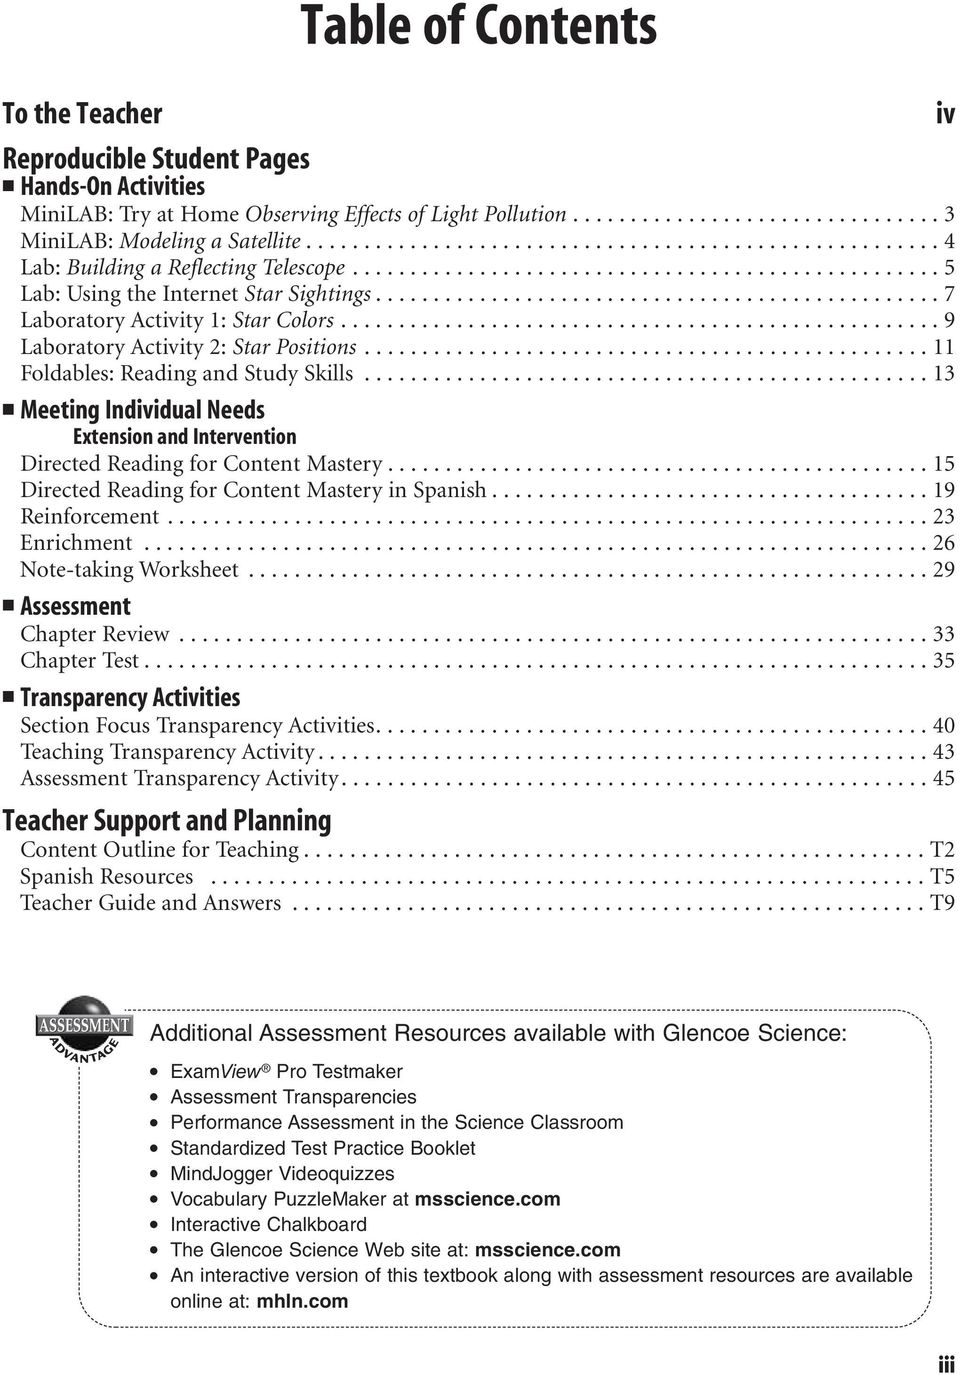 worksheet Reproducible Student Worksheet lab worksheets for each student edition activity laboratory 4